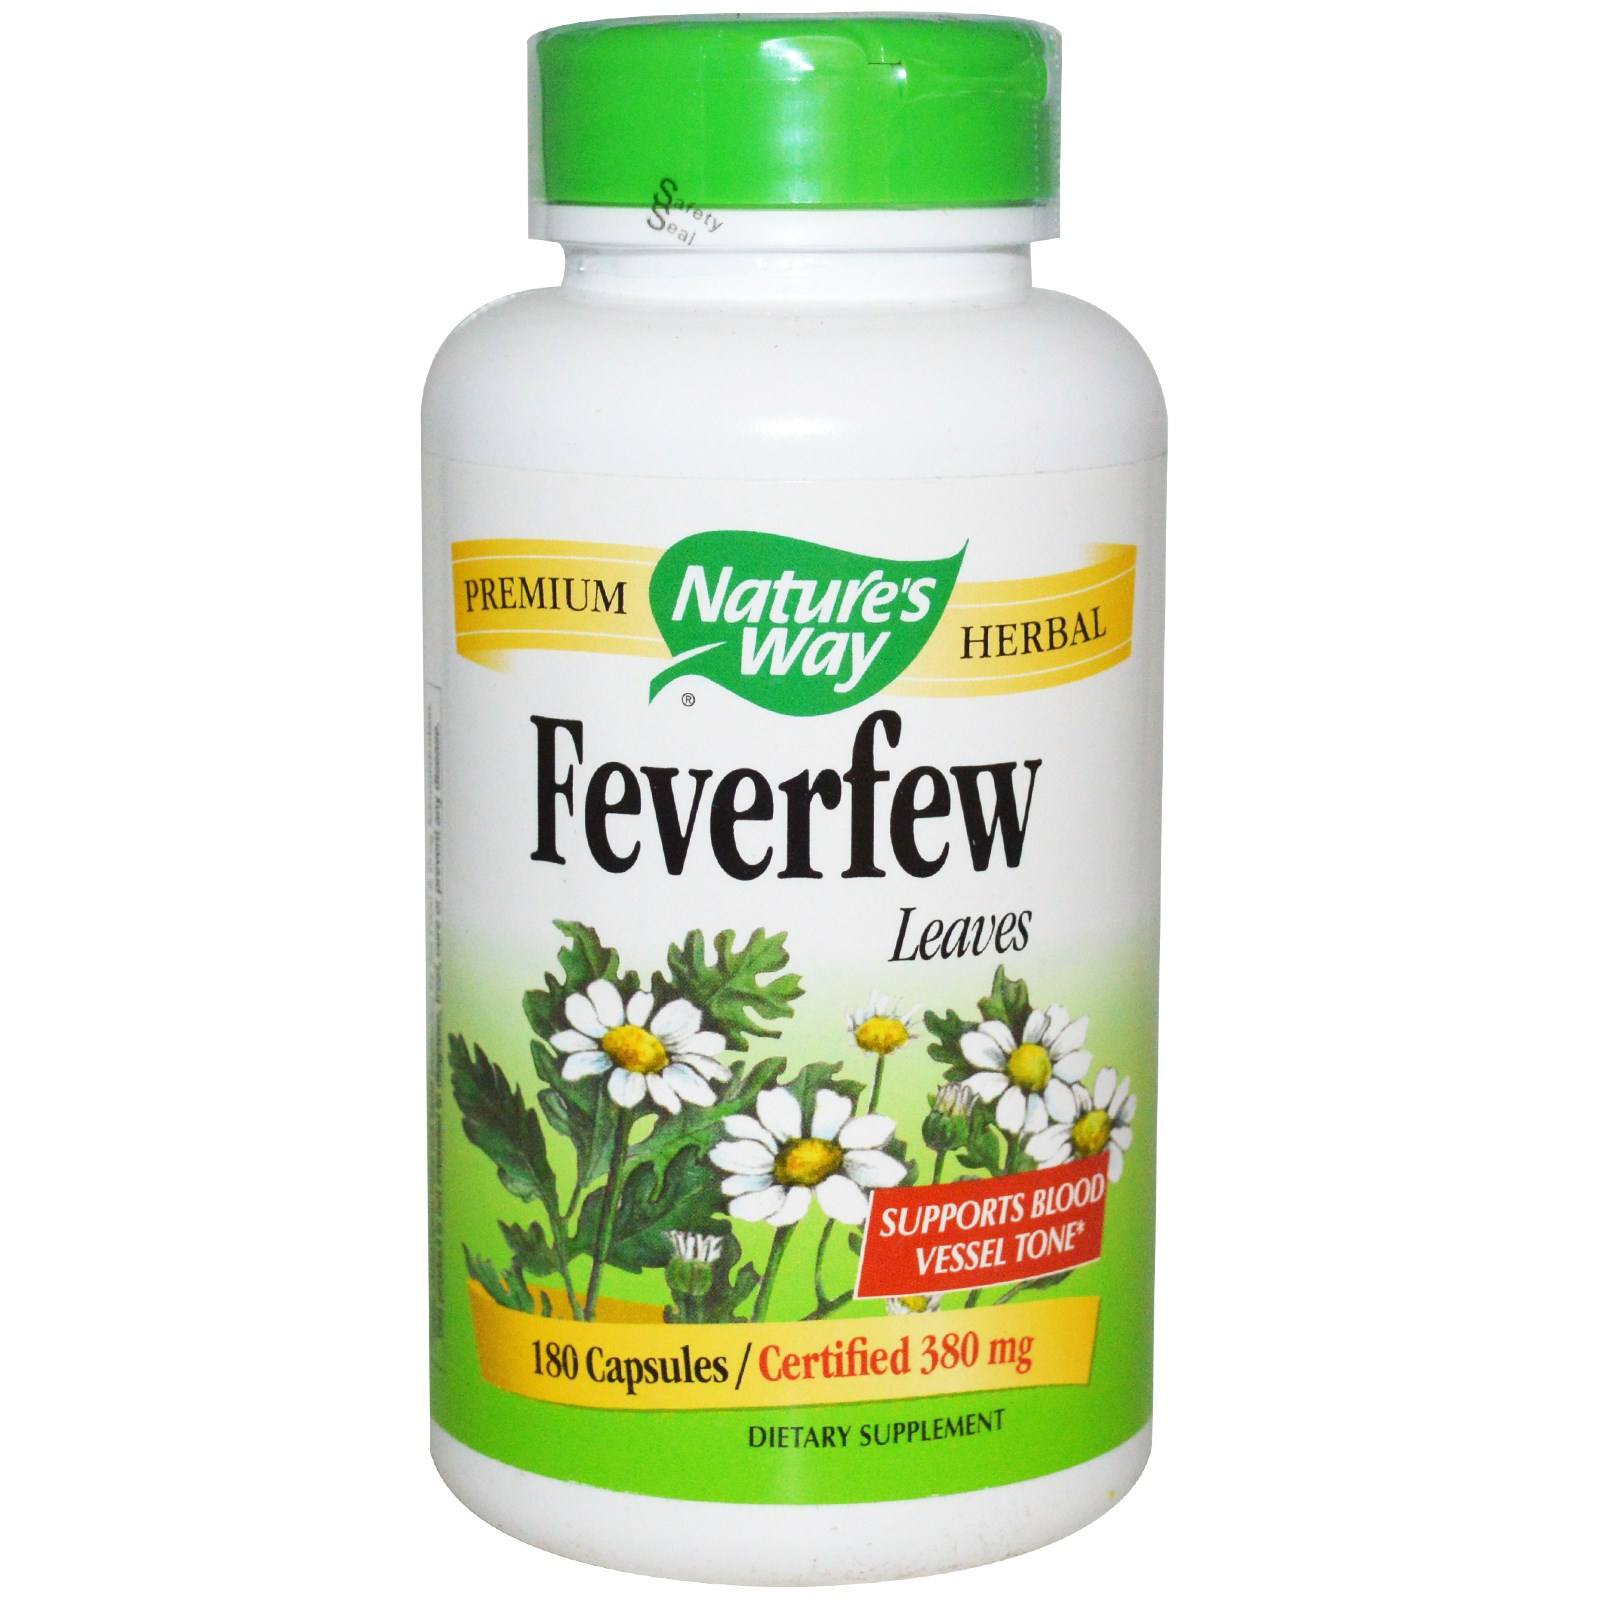 How to Get Rid of Migraines with Feverfew